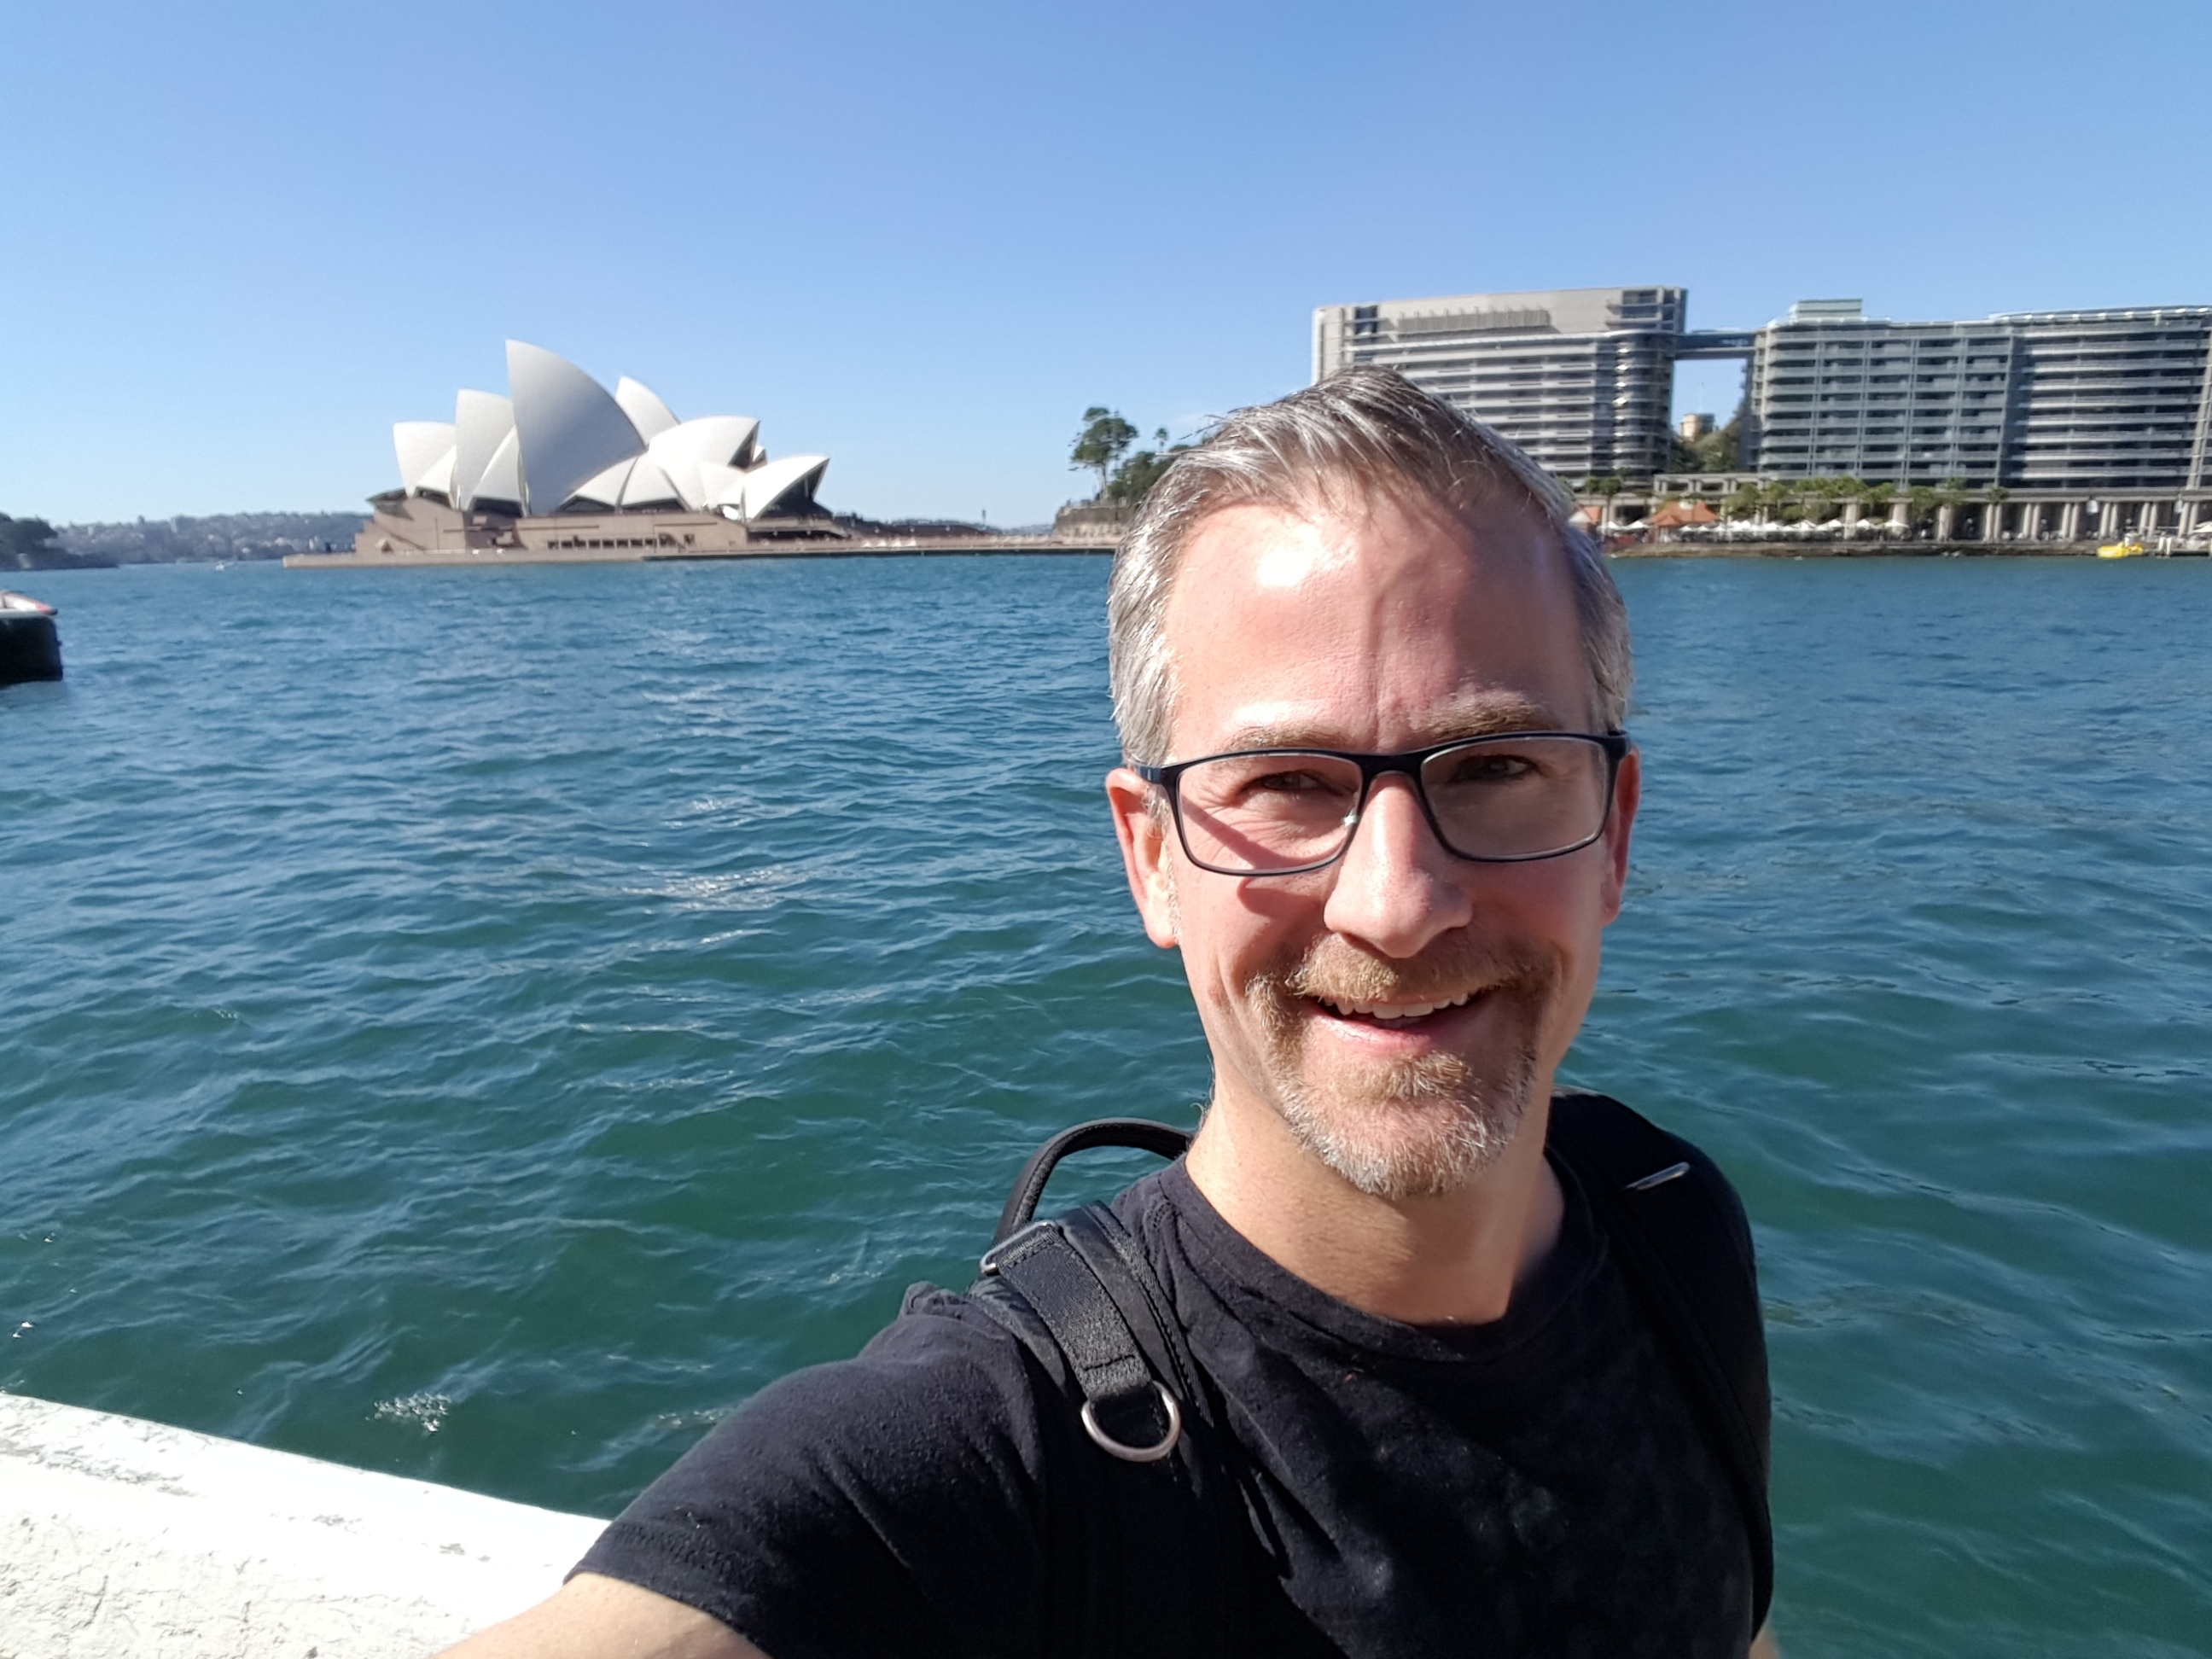 Randy posting for a picture with the Sydney Opera house on the background